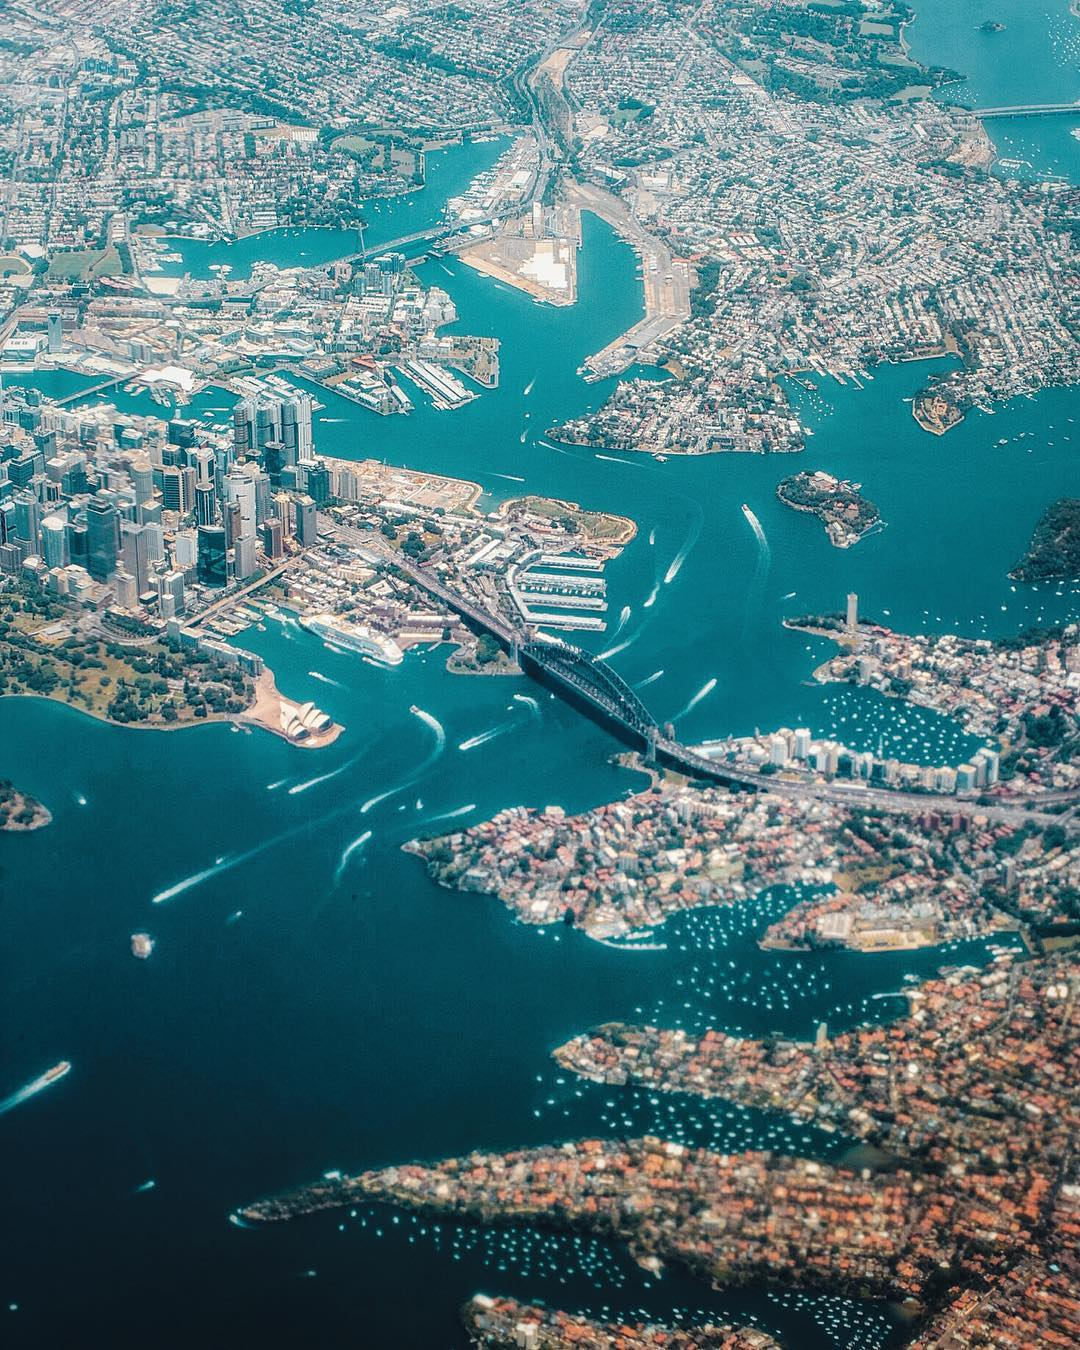 "Check out this awesome view of Sydney, Australia, taken from the window of a passenger jet leaving the city. Sydney covers a 4,775 square-mile (12,367-sq.-km) area and boasts roughly 2.5 million acres (1 million hectares) of nature reserves and parks. From this perspective, we can see many of the city's landmarks, including the Sydney Harbour Bridge, Sydney Opera House, Royal Botanic Gardens, Sydney Observatory, and others.  33°51'09.7""S, 151°12'38.3""E  Source imagery: Walt Loveridge"